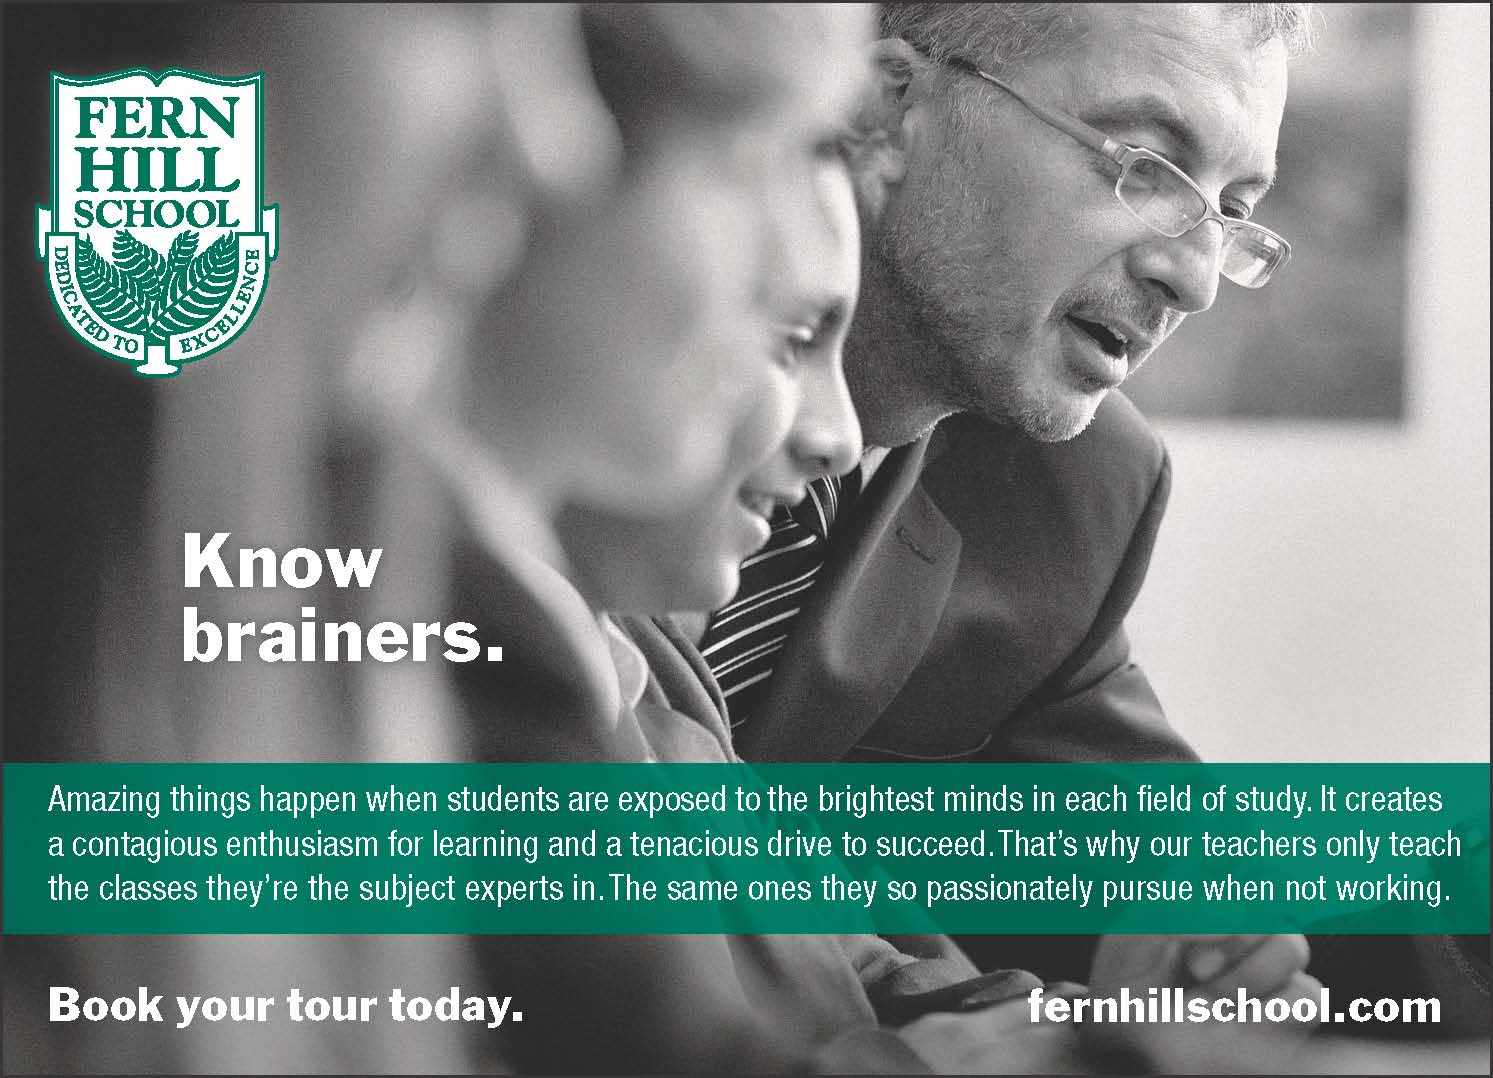 Fern Hill _Know brainers_ ad.jpg